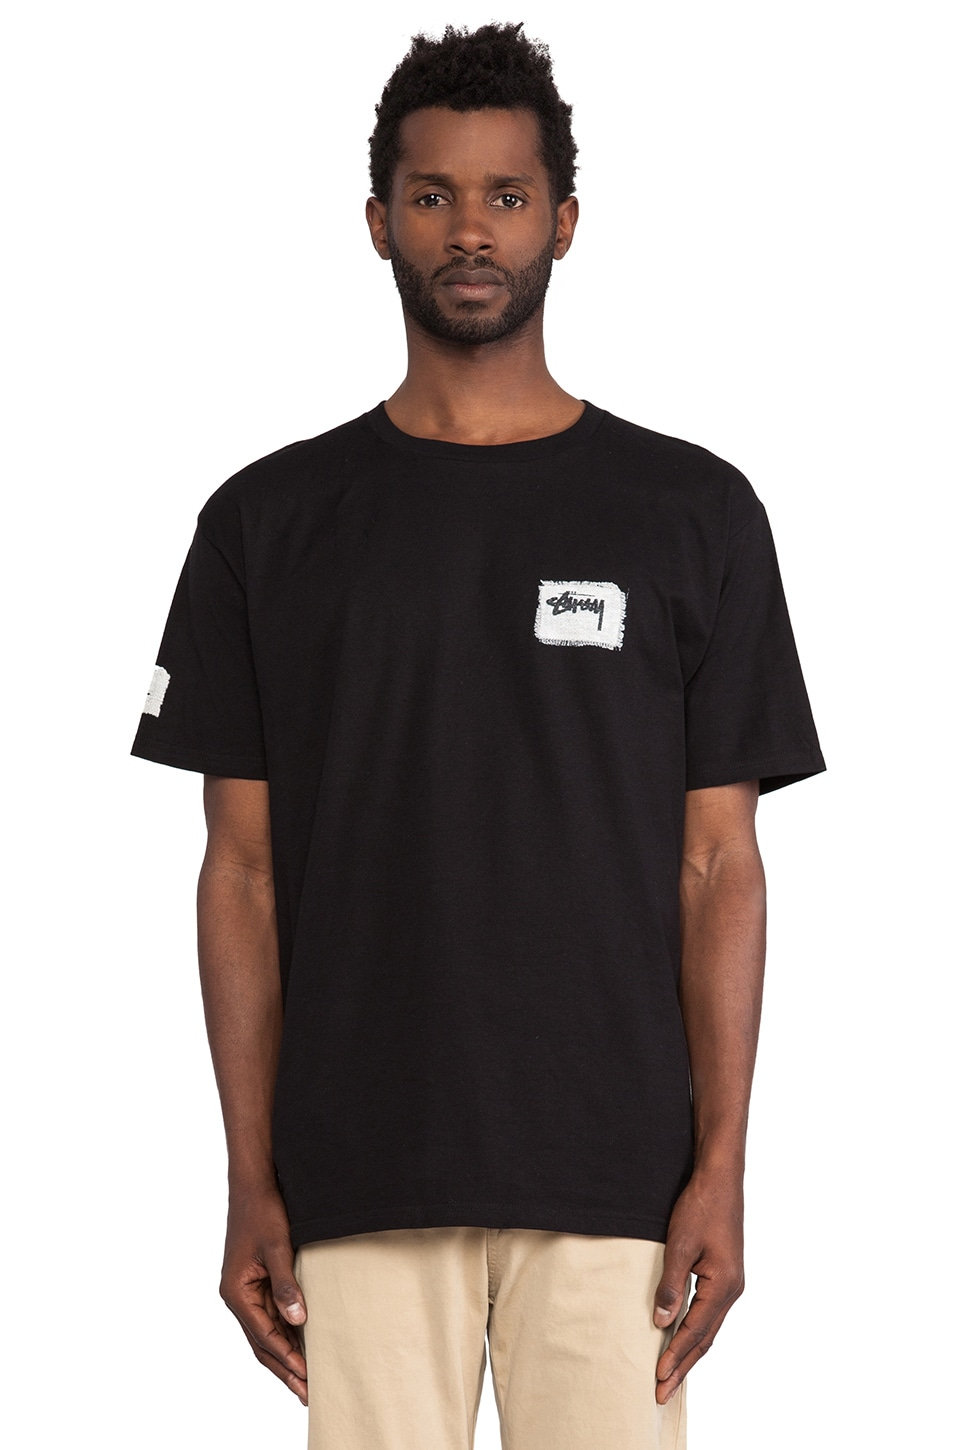 Stussy 8 Ball Stitch in Black